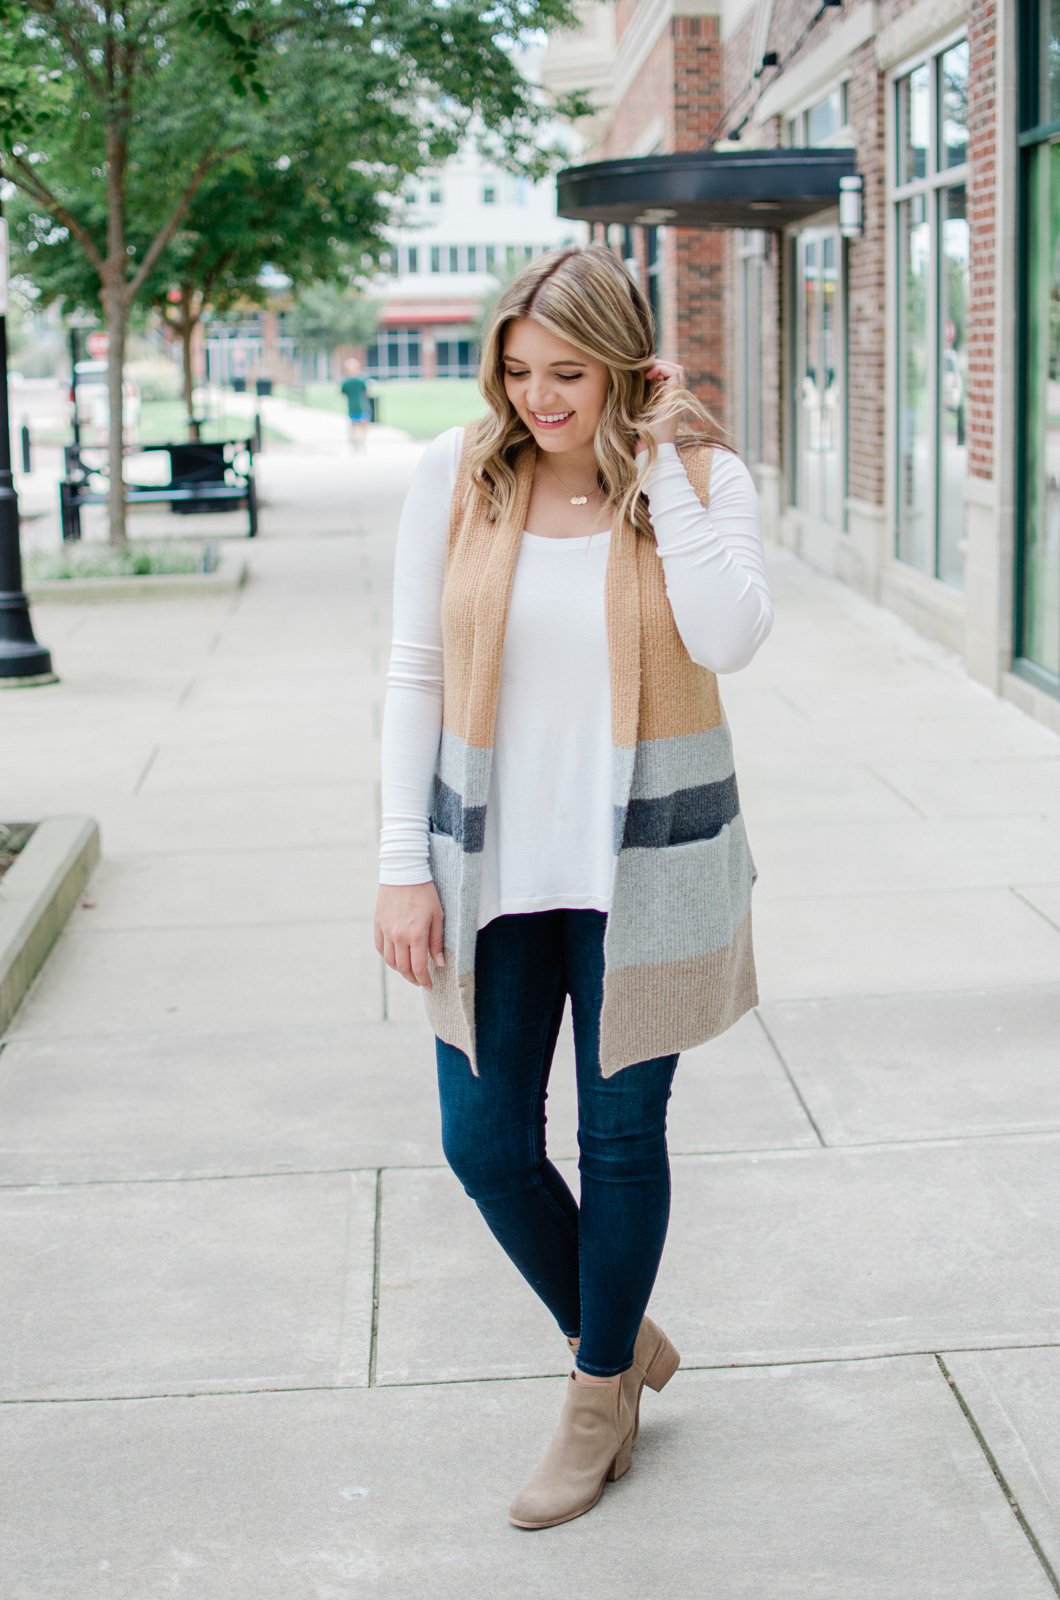 open sweater vest outfit for fall - how to wear a long sweater vest outfit for fall! | bylaurenm.com